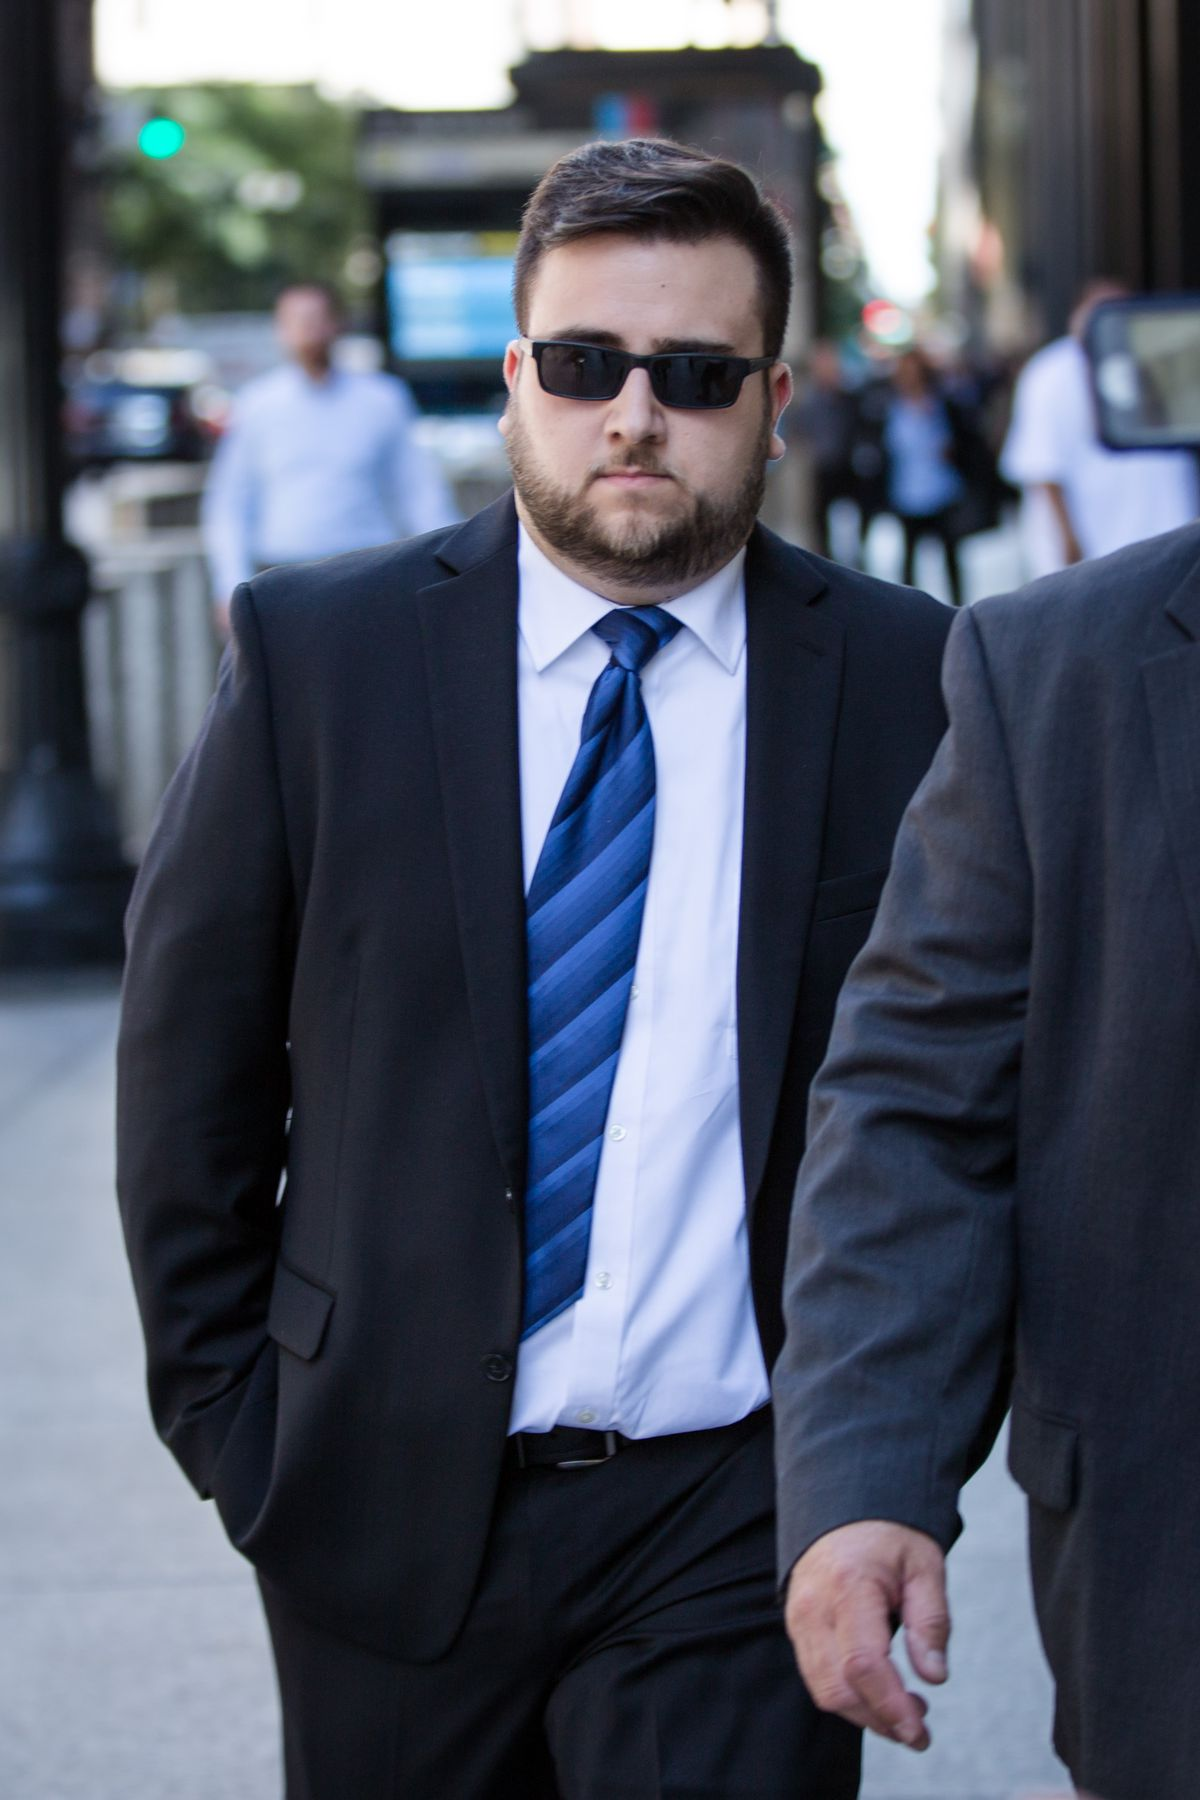 Edward J. Majerczyk leaves the Dirksen Federal Courthouse after pleading guilty on Tuesday.   Santiago Covarrubias/Sun-Times